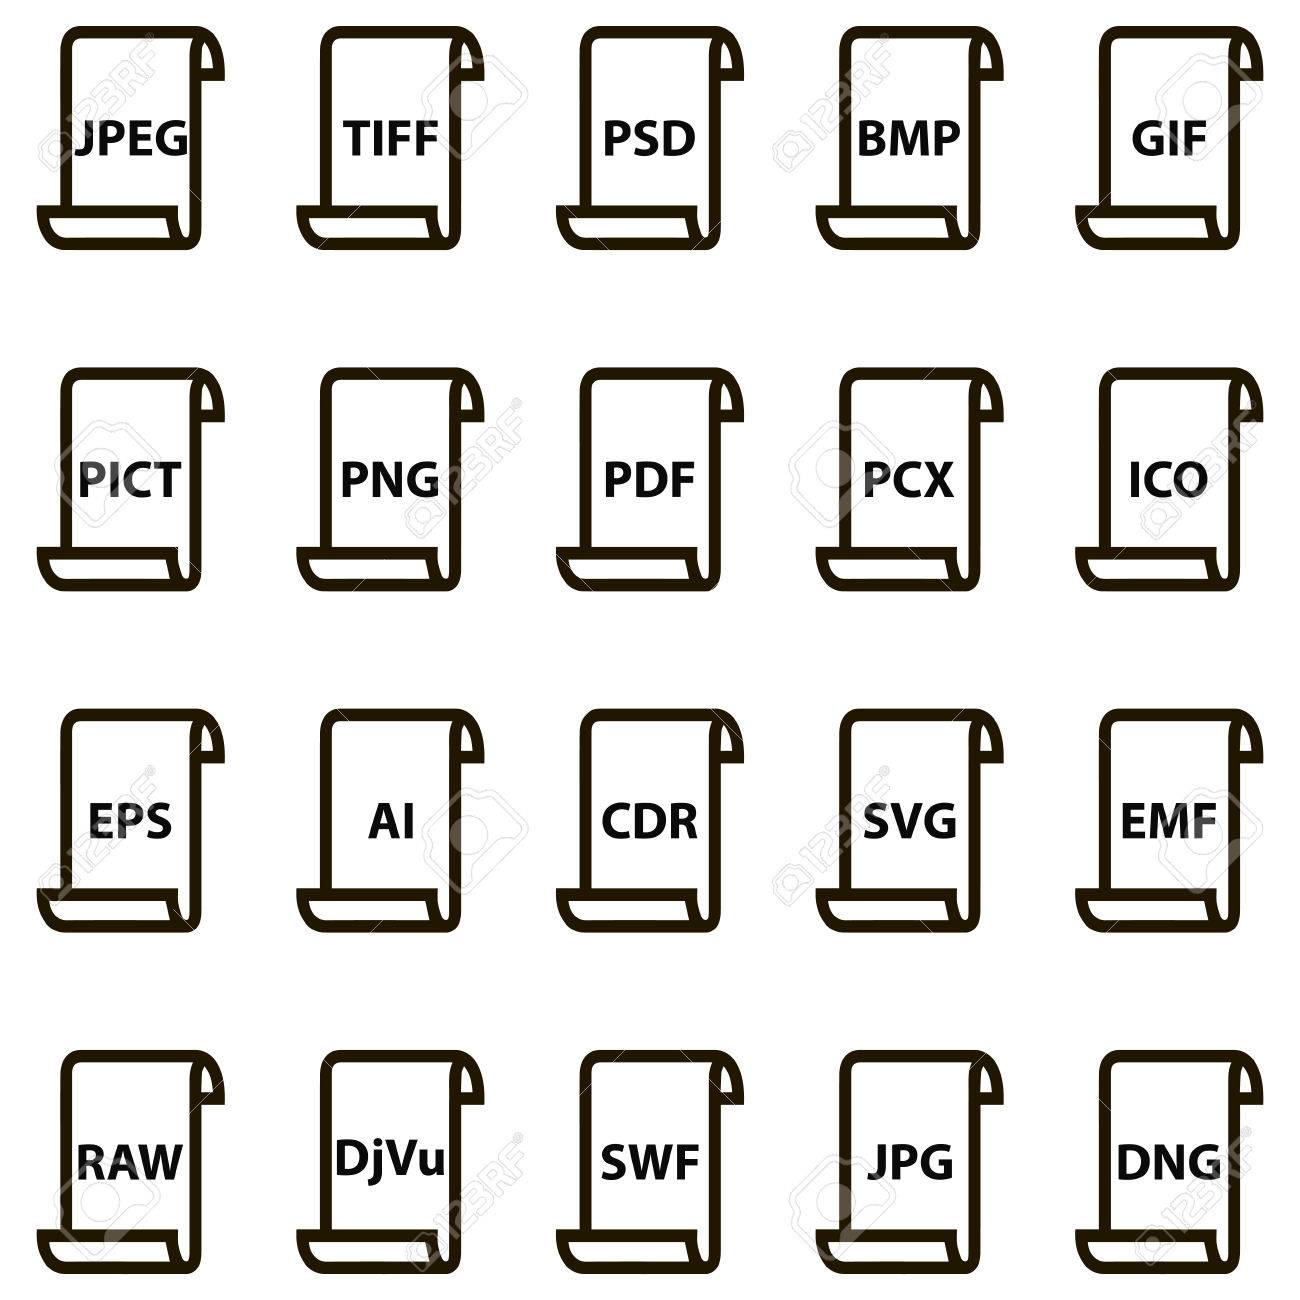 Set icons of document file formats raster and vector graphics. Vector illustration for print or website design Stock Vector - 64318429